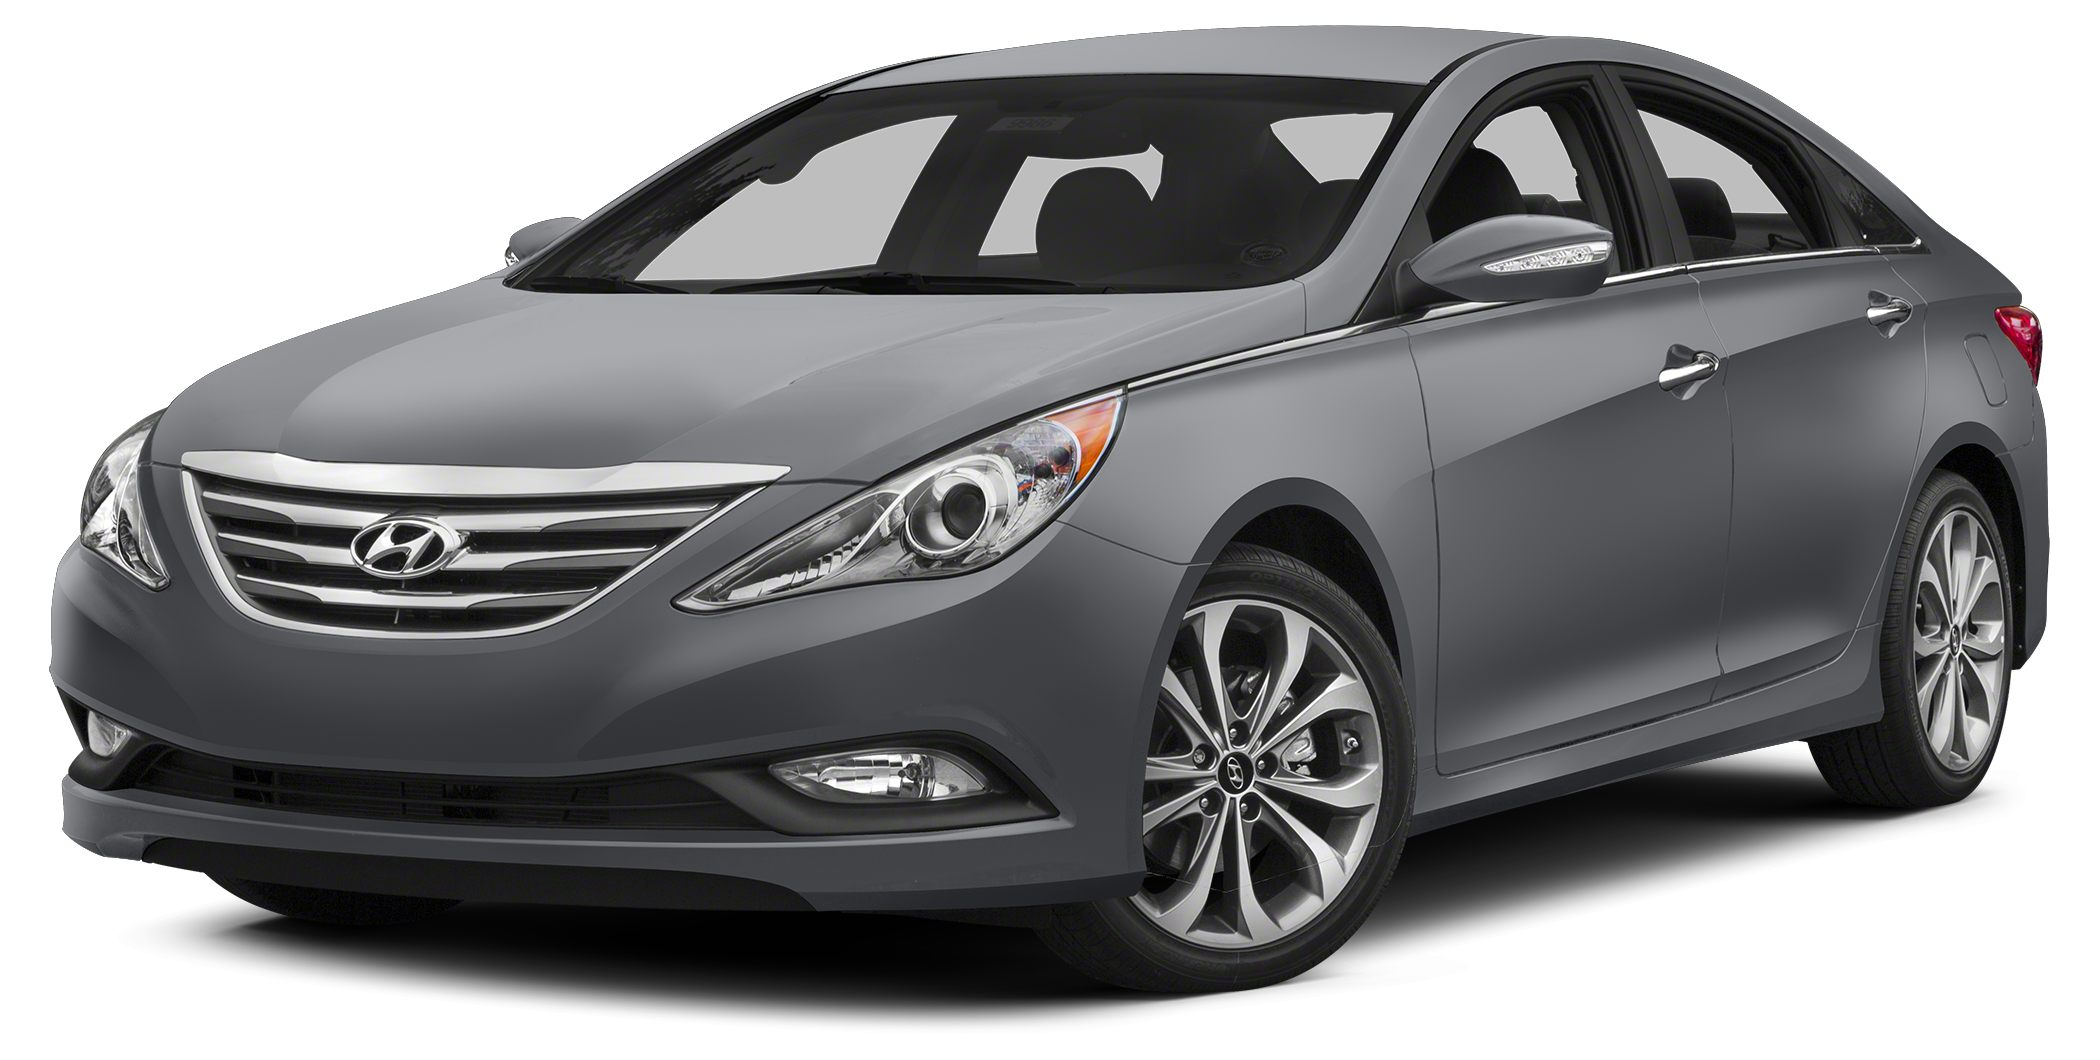 2014 Hyundai Sonata SE HYUNDAI CERTIFIED - NAVIGATION- MOONROOF- ALL SERVICED BY US -- This one ow